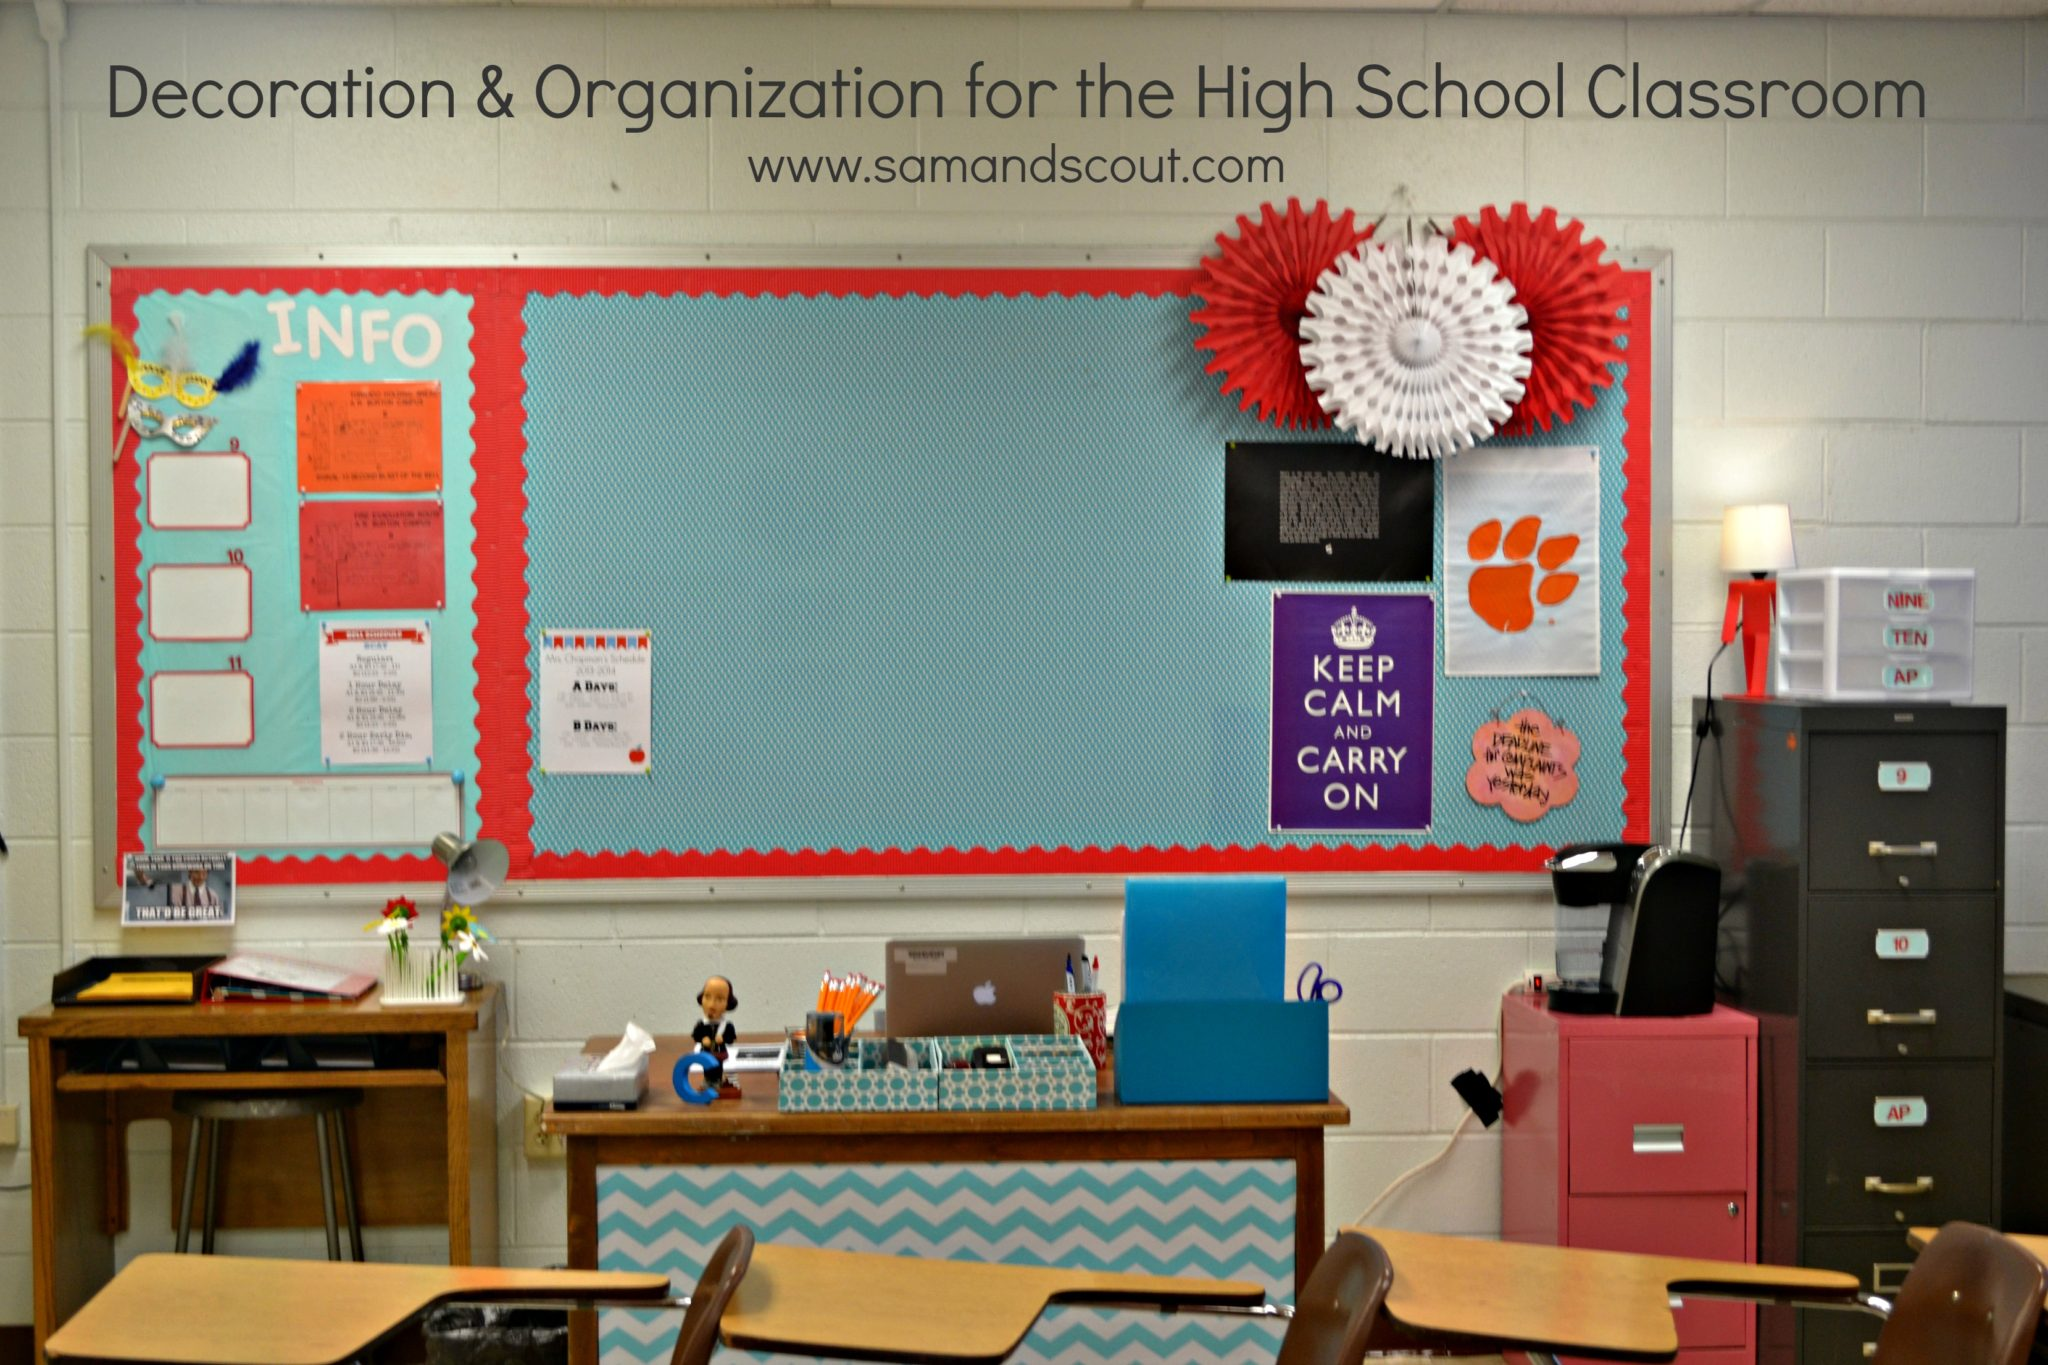 Classroom Design Ideas High School ~ Decoration organization for the high school classroom